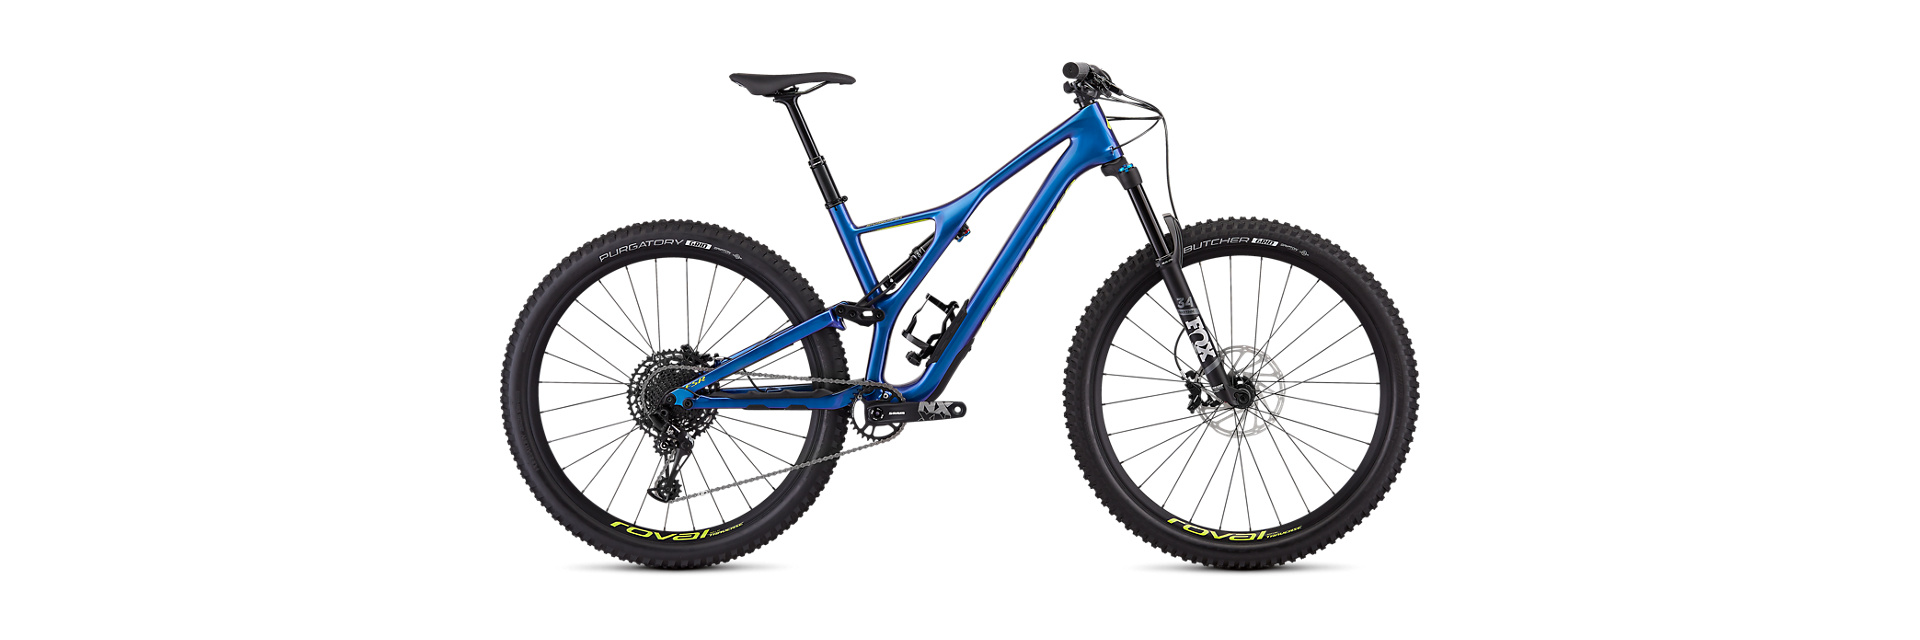 Specialized Specialized Stumpjumper Comp Carbon 27.5 2019